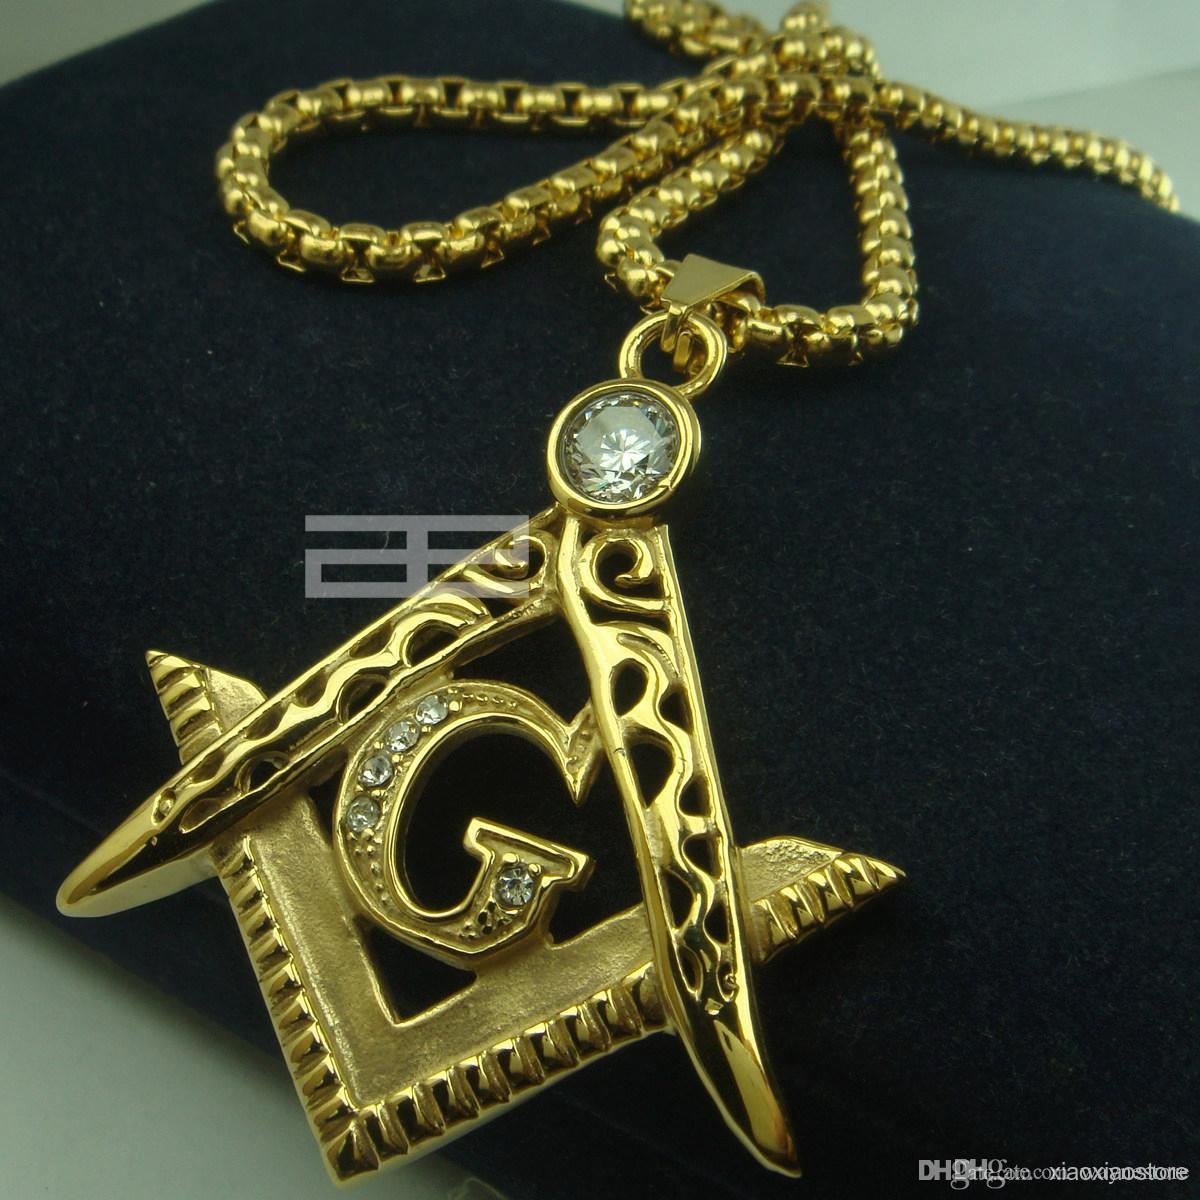 Wholesale mens 18k gold fiiled freemasonry masonic mason pendant wholesale mens 18k gold fiiled freemasonry masonic mason pendant free chain necklace n214 butterfly pendant necklace birthstone pendant necklace from aloadofball Gallery